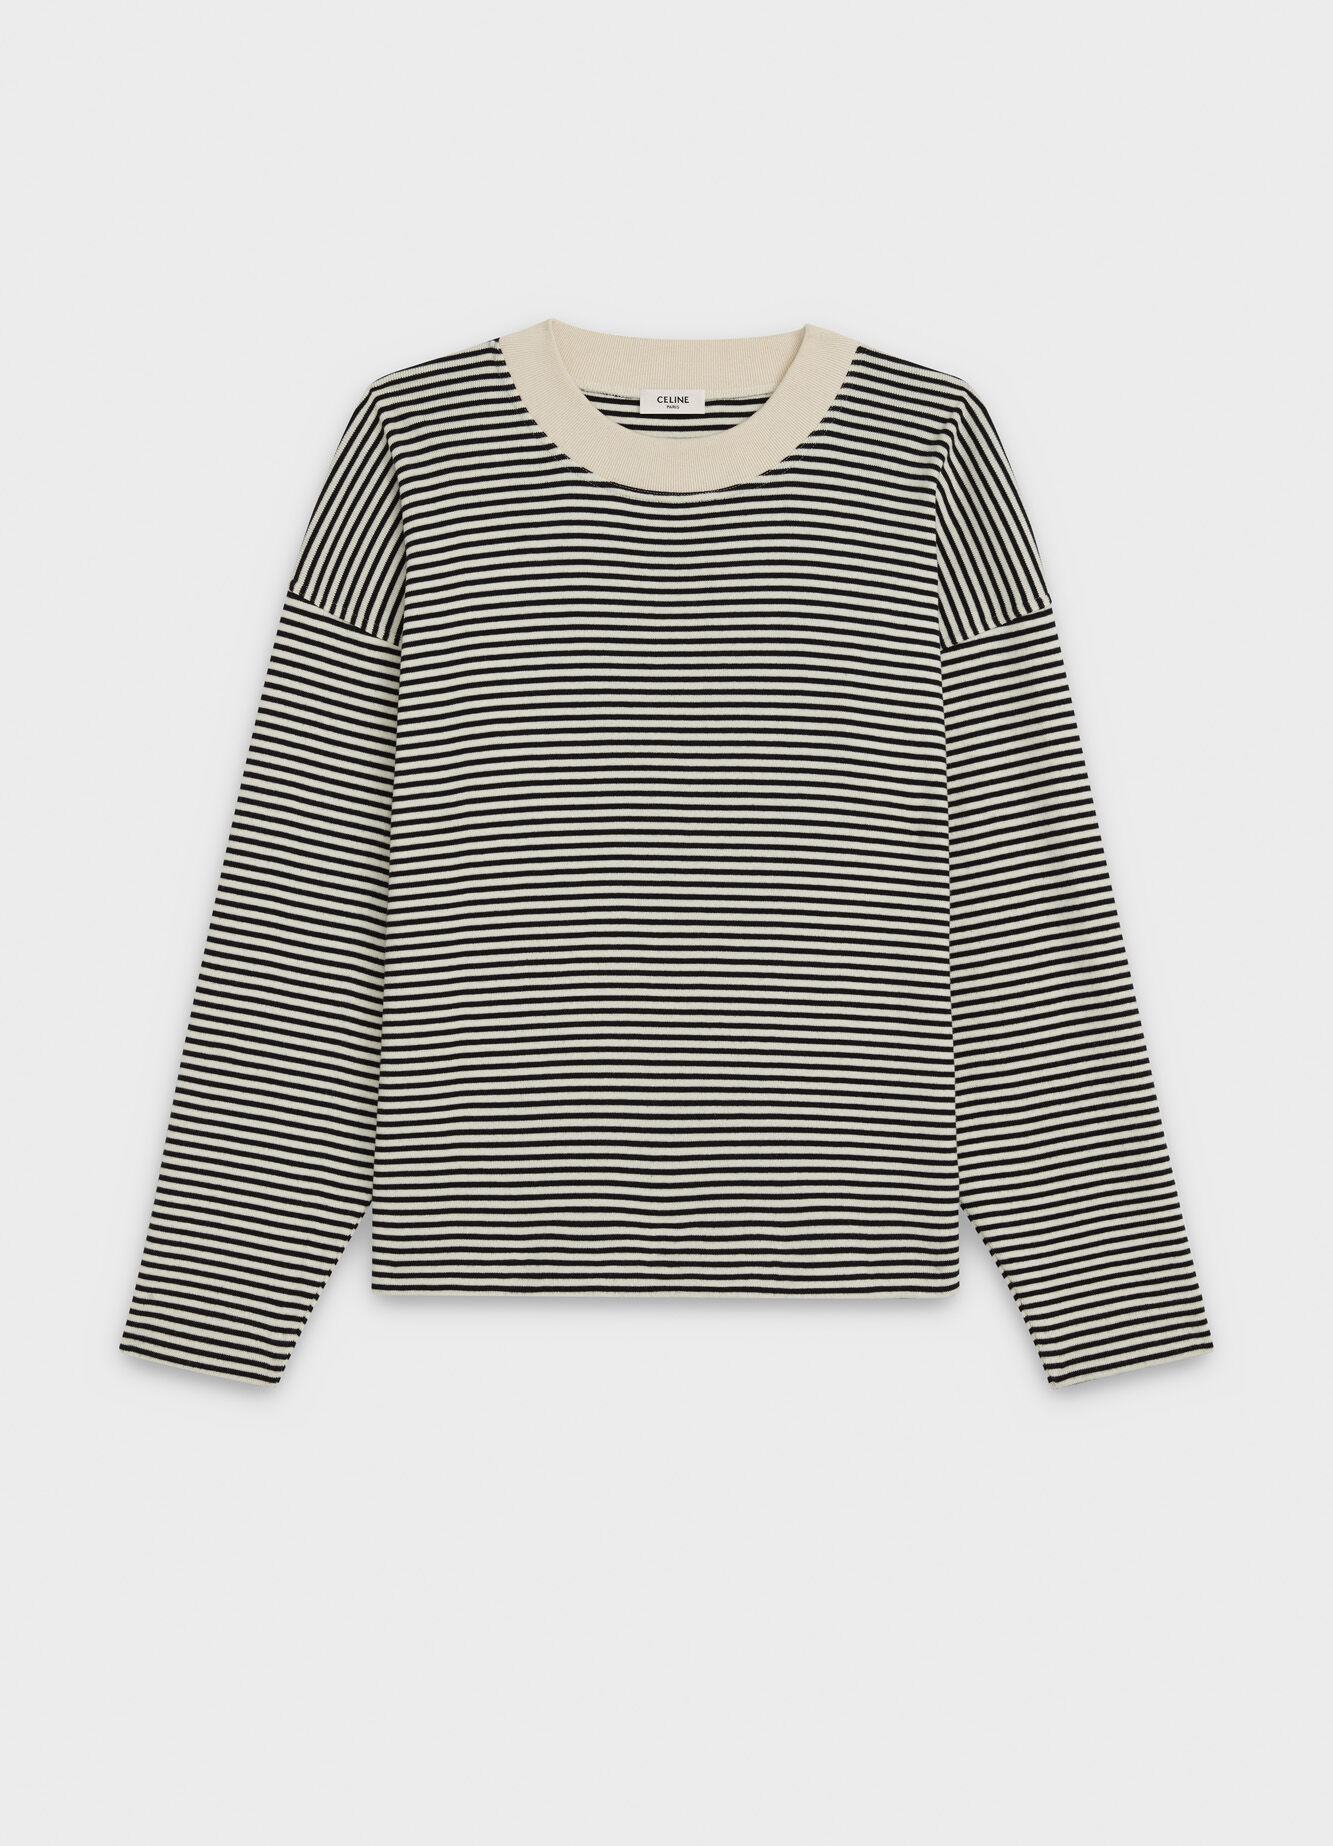 CELINE OVERSIZE T-SHIRT WITH LONG SLEEVES IN STRIPED COTTON